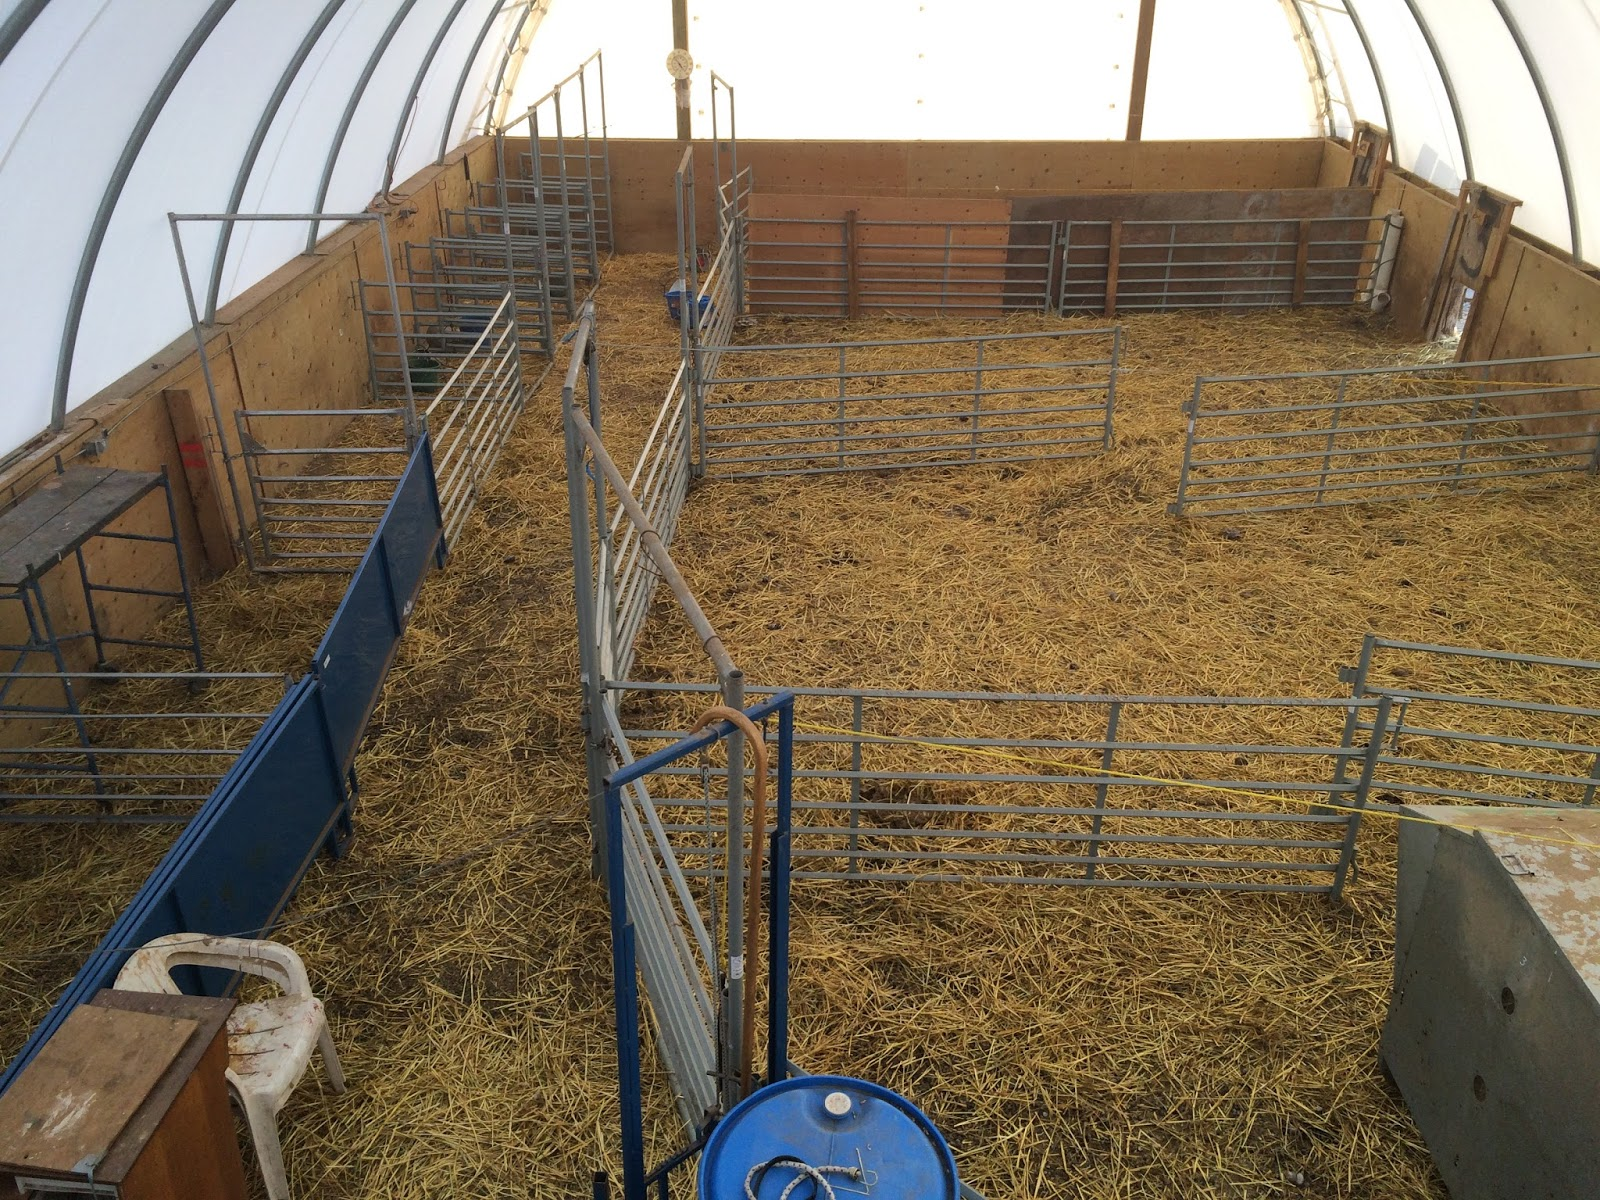 Living Sky Ranch Preparation For Lambing